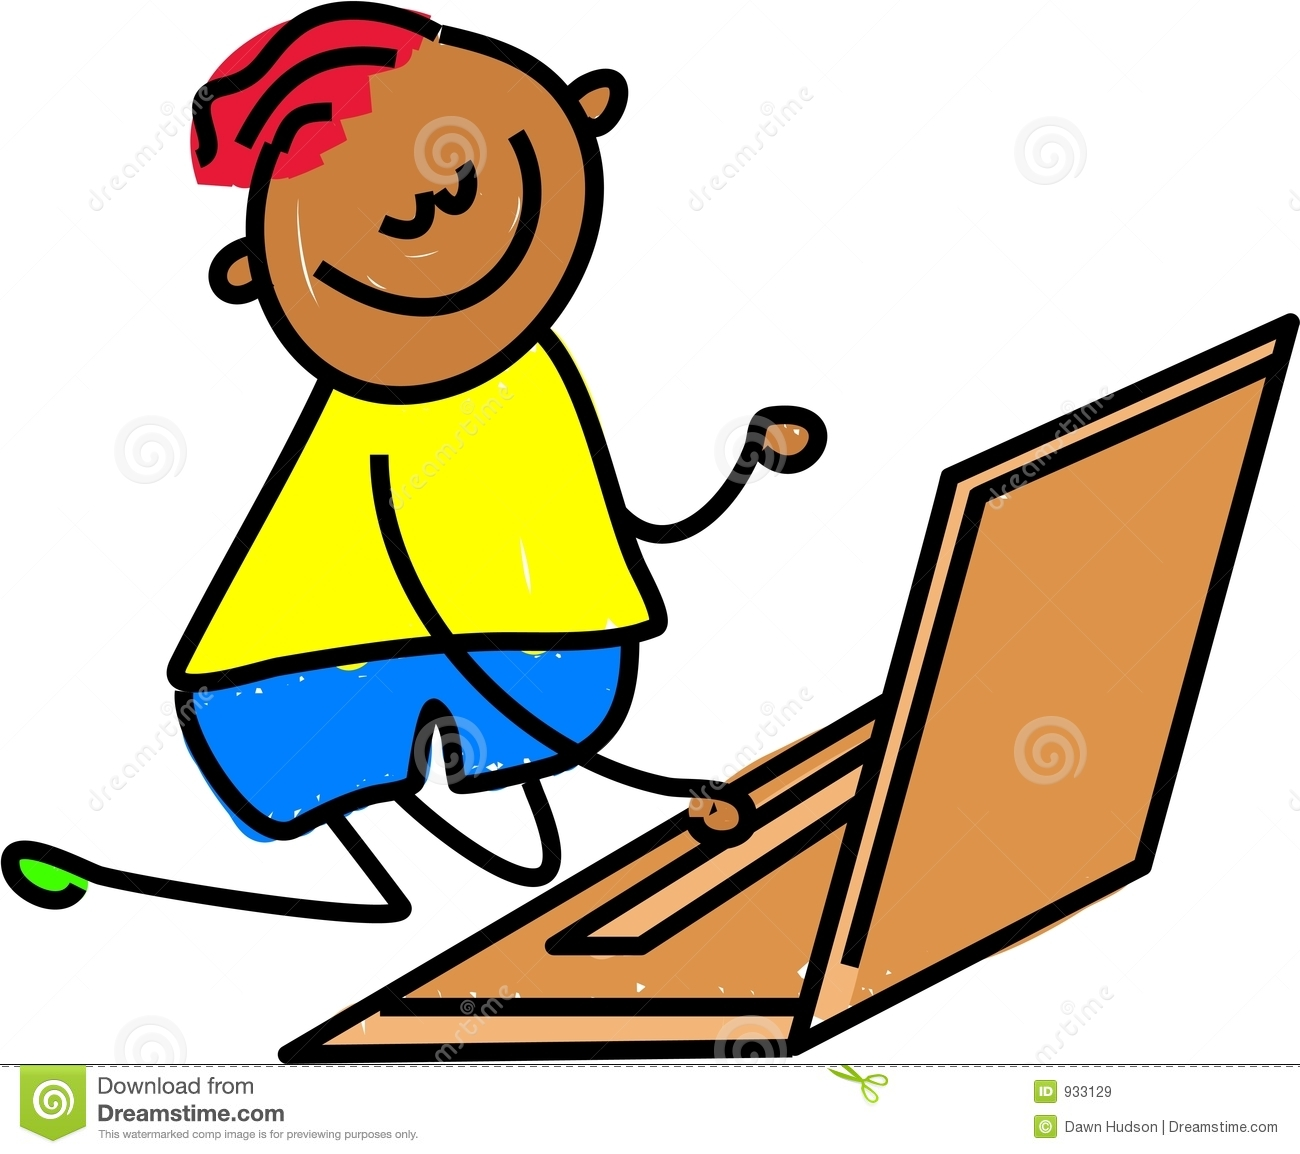 Free clipart of kids using a laptop image Kid On Computer Clipart | Free download best Kid On Computer Clipart ... image